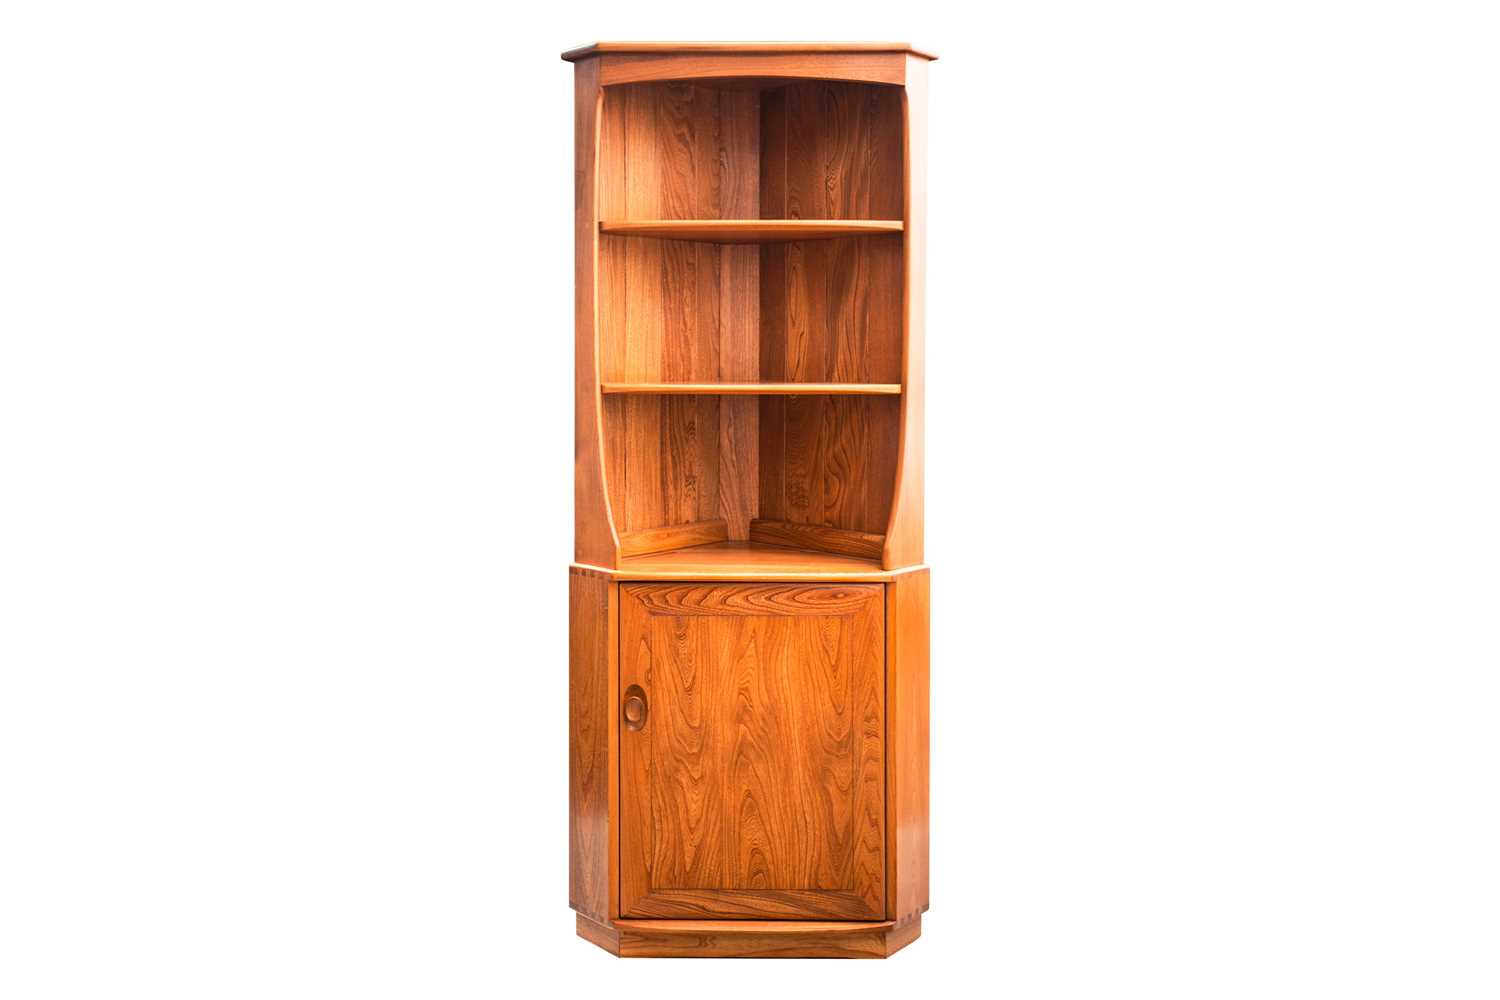 An Ercol golden dawn light elm free standing corner cupboard with an open upper section above a - Image 4 of 8